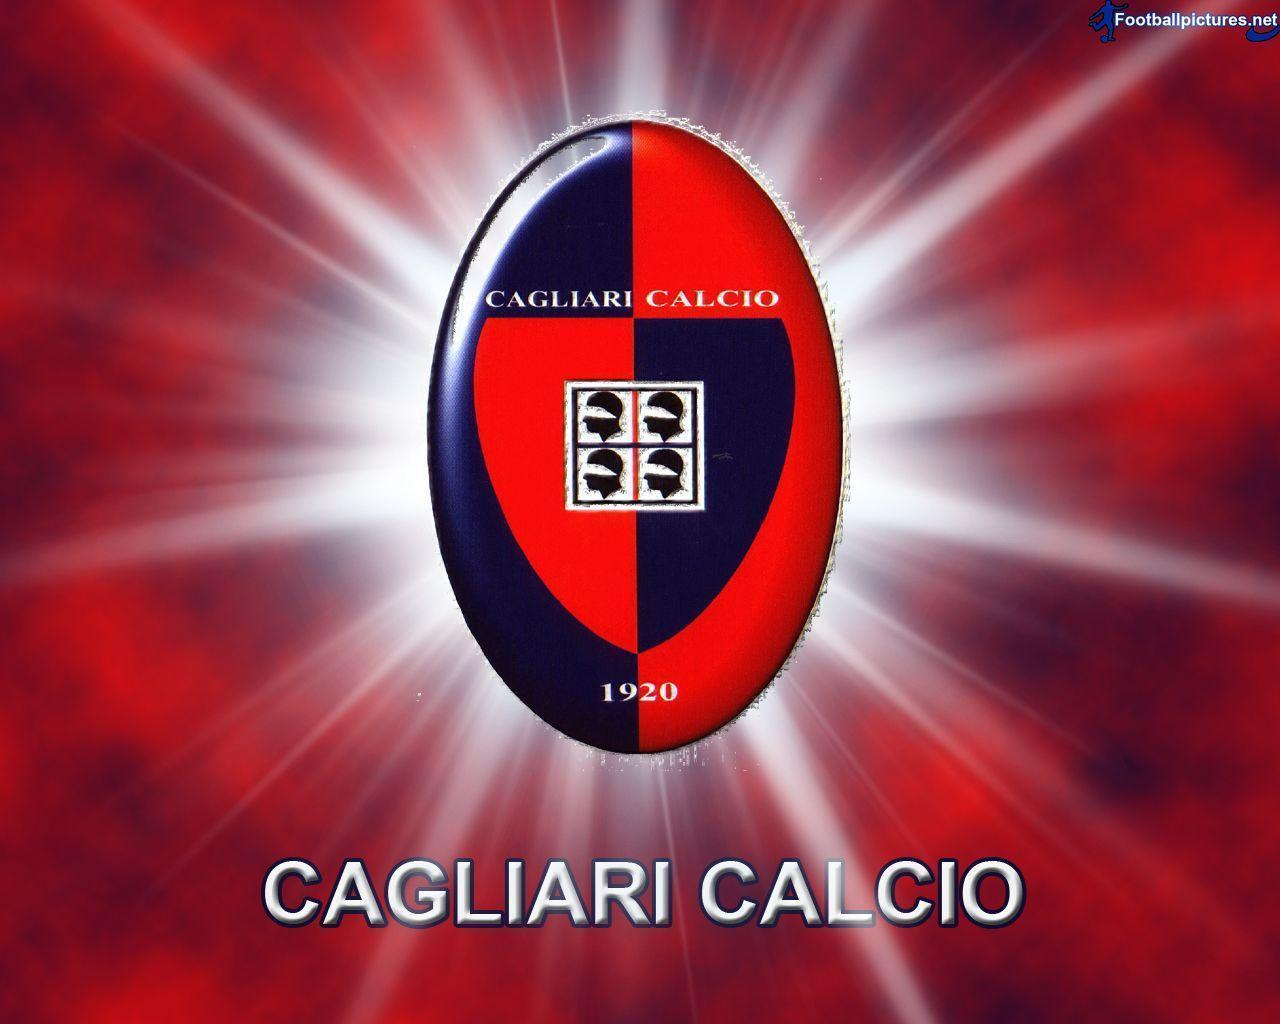 Cagliari pictures, Football Wallpapers and Photos